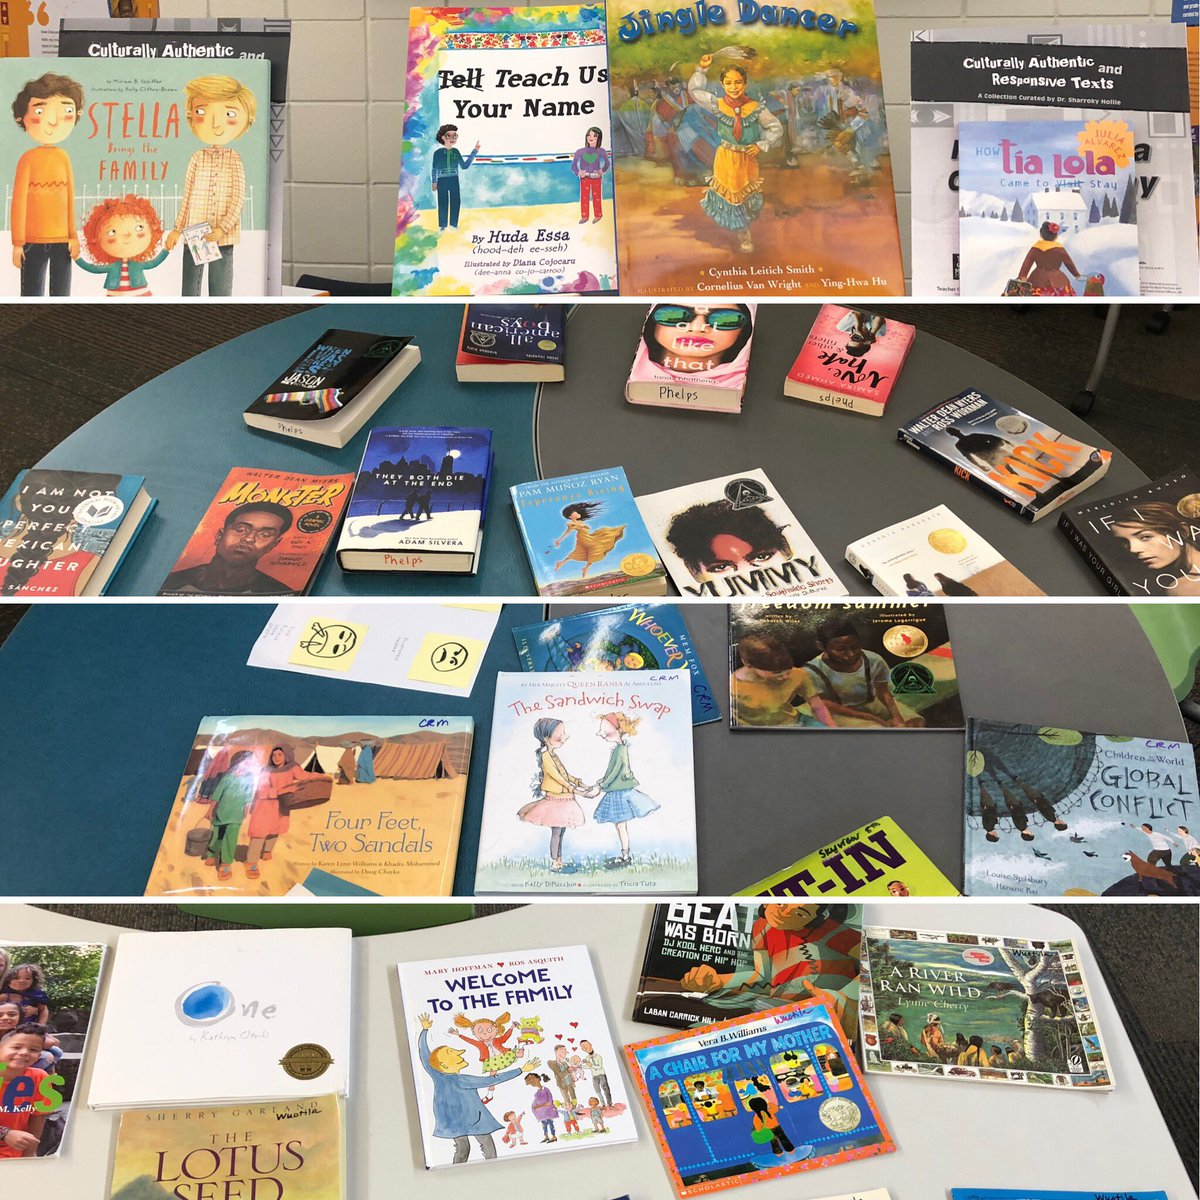 Exploring a wealth of culturally responsive reads at CLR summer institute! #VABBNation2019 #myTCM @ISD833 #CLR2<br>http://pic.twitter.com/MDboiP0Mr5